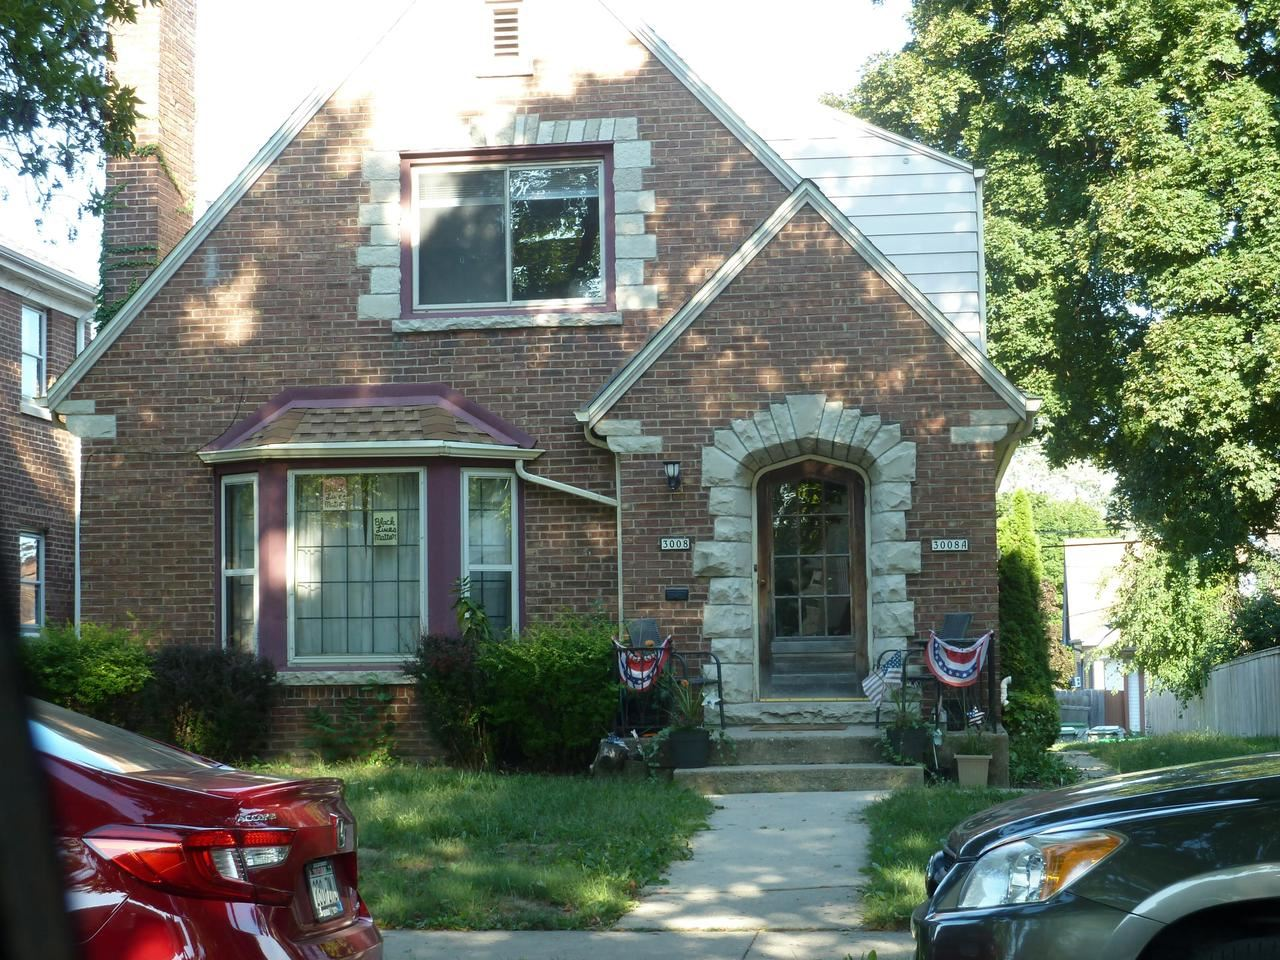 3008 S 47th St #3008A, Milwaukee, WI 53219 - MLS#: 1696425